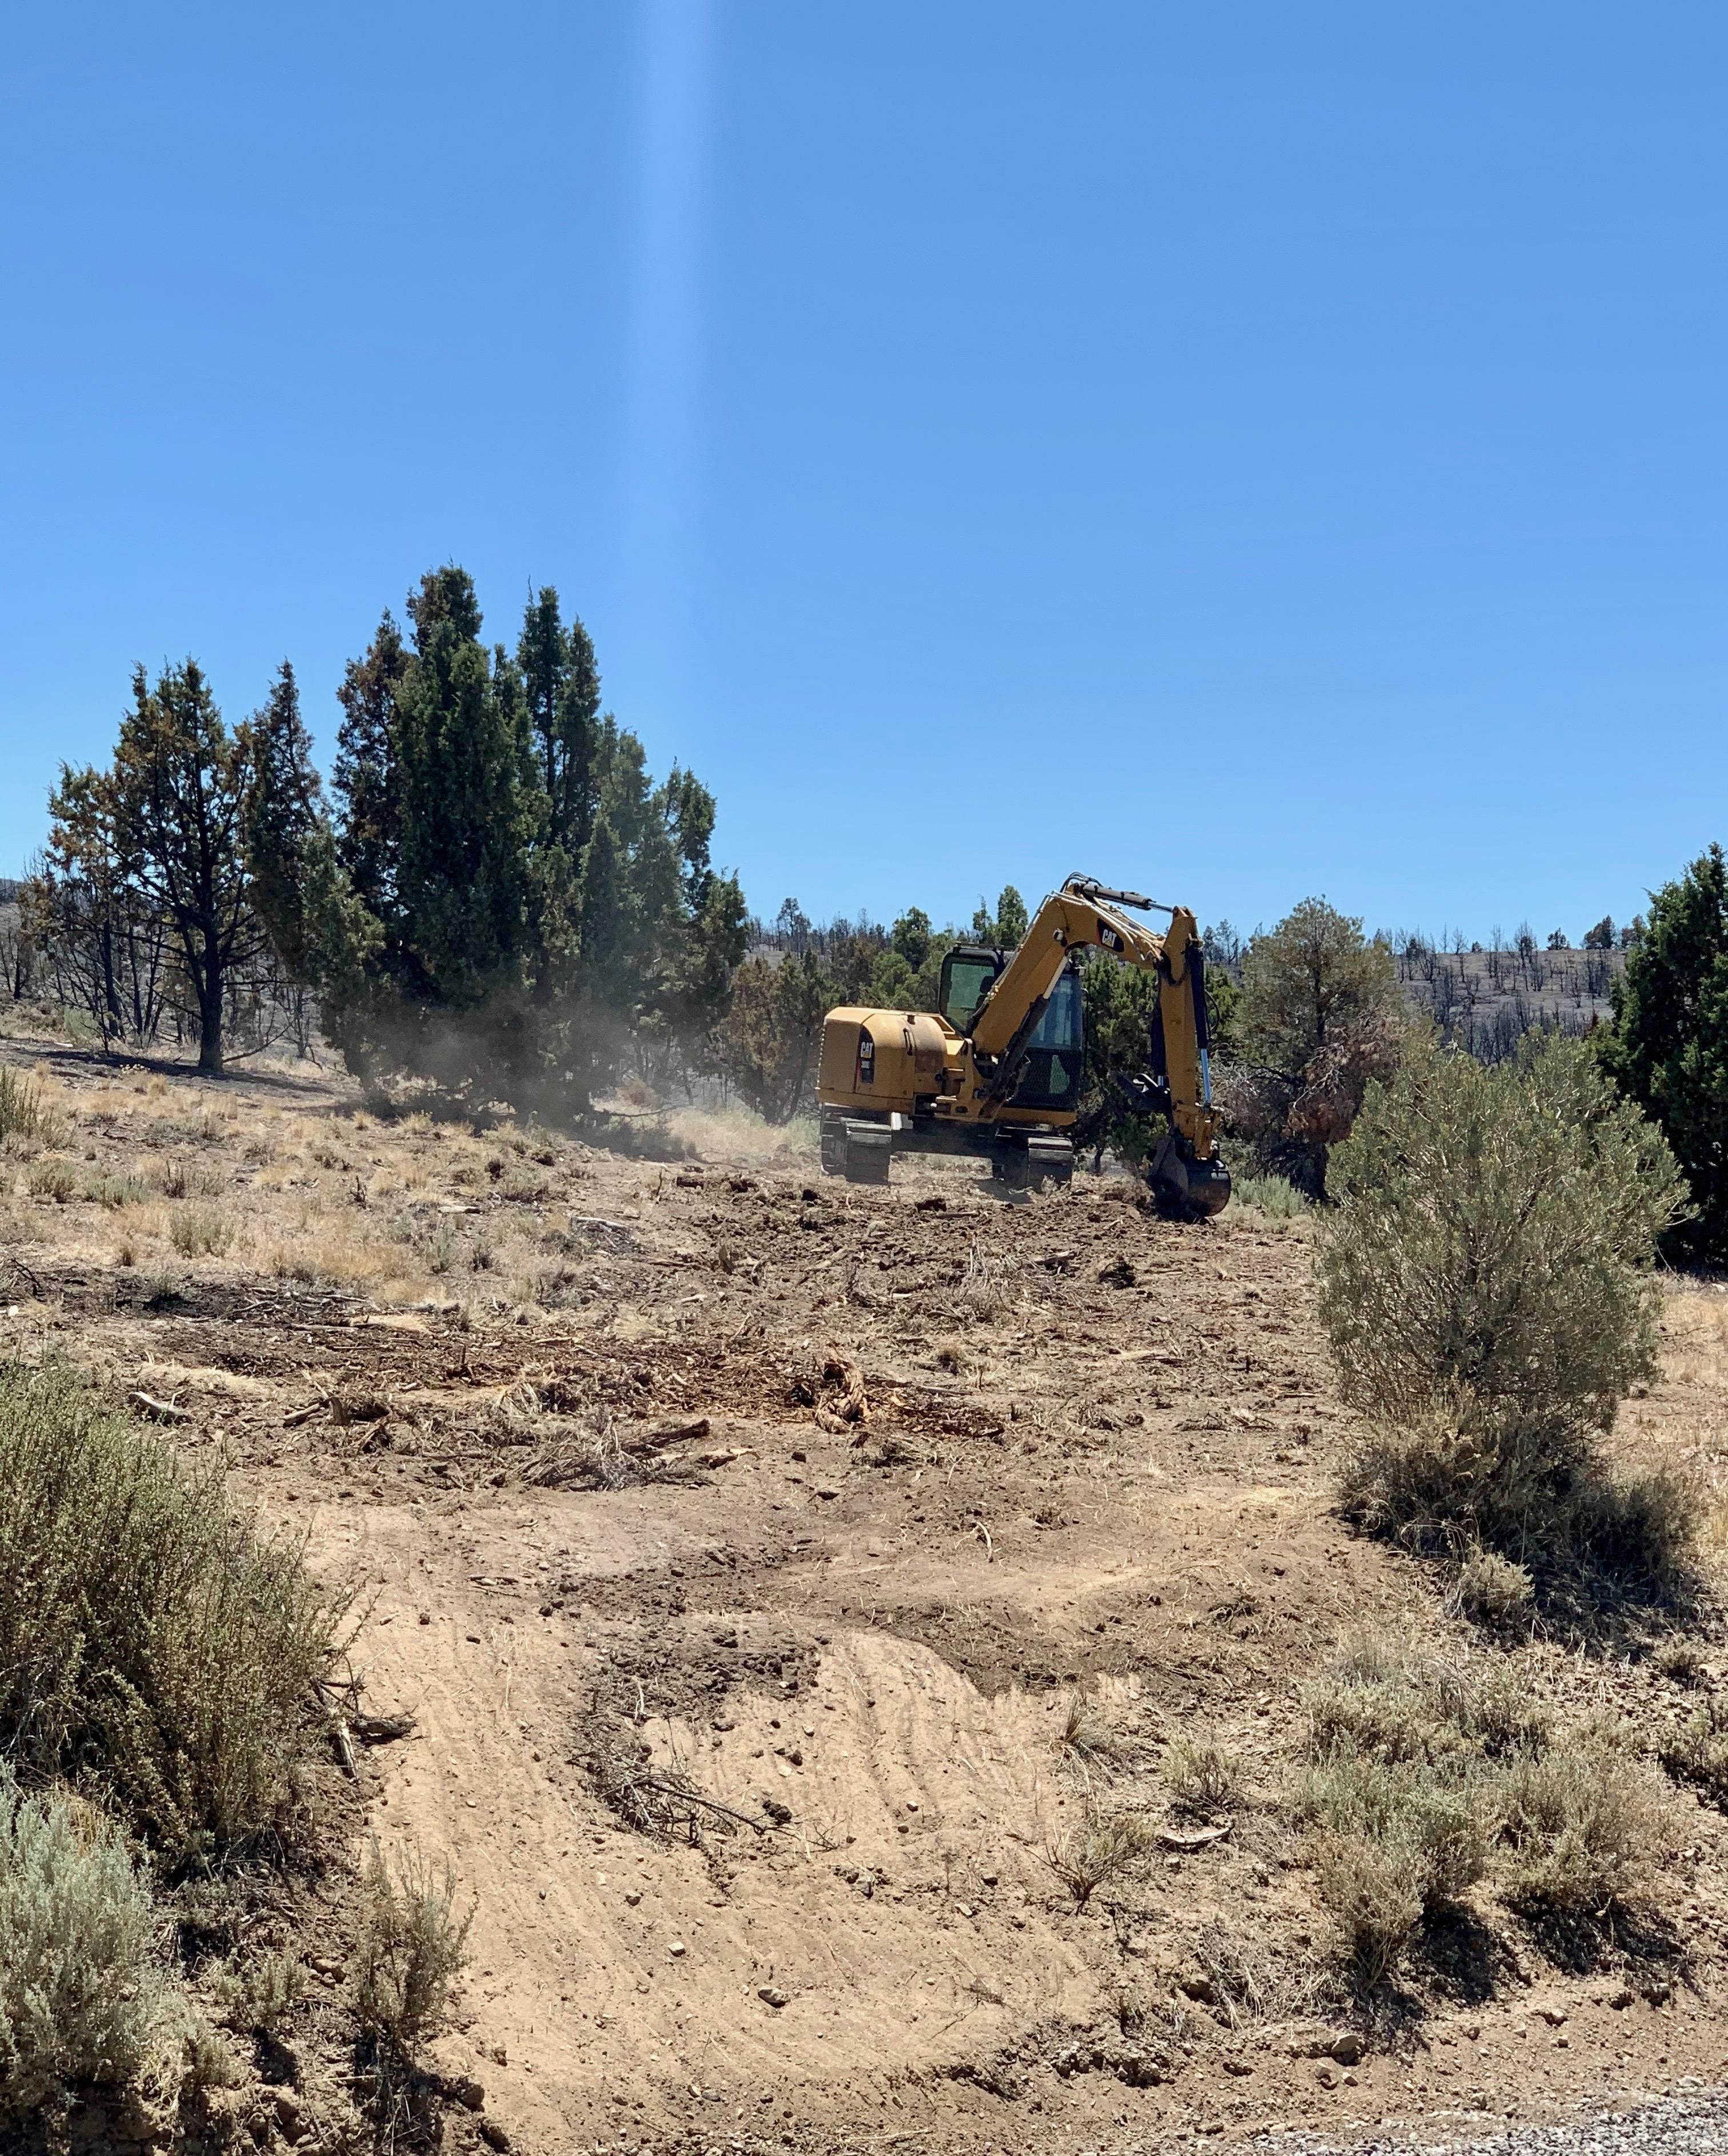 Dirt and vegetation with bulldozer.